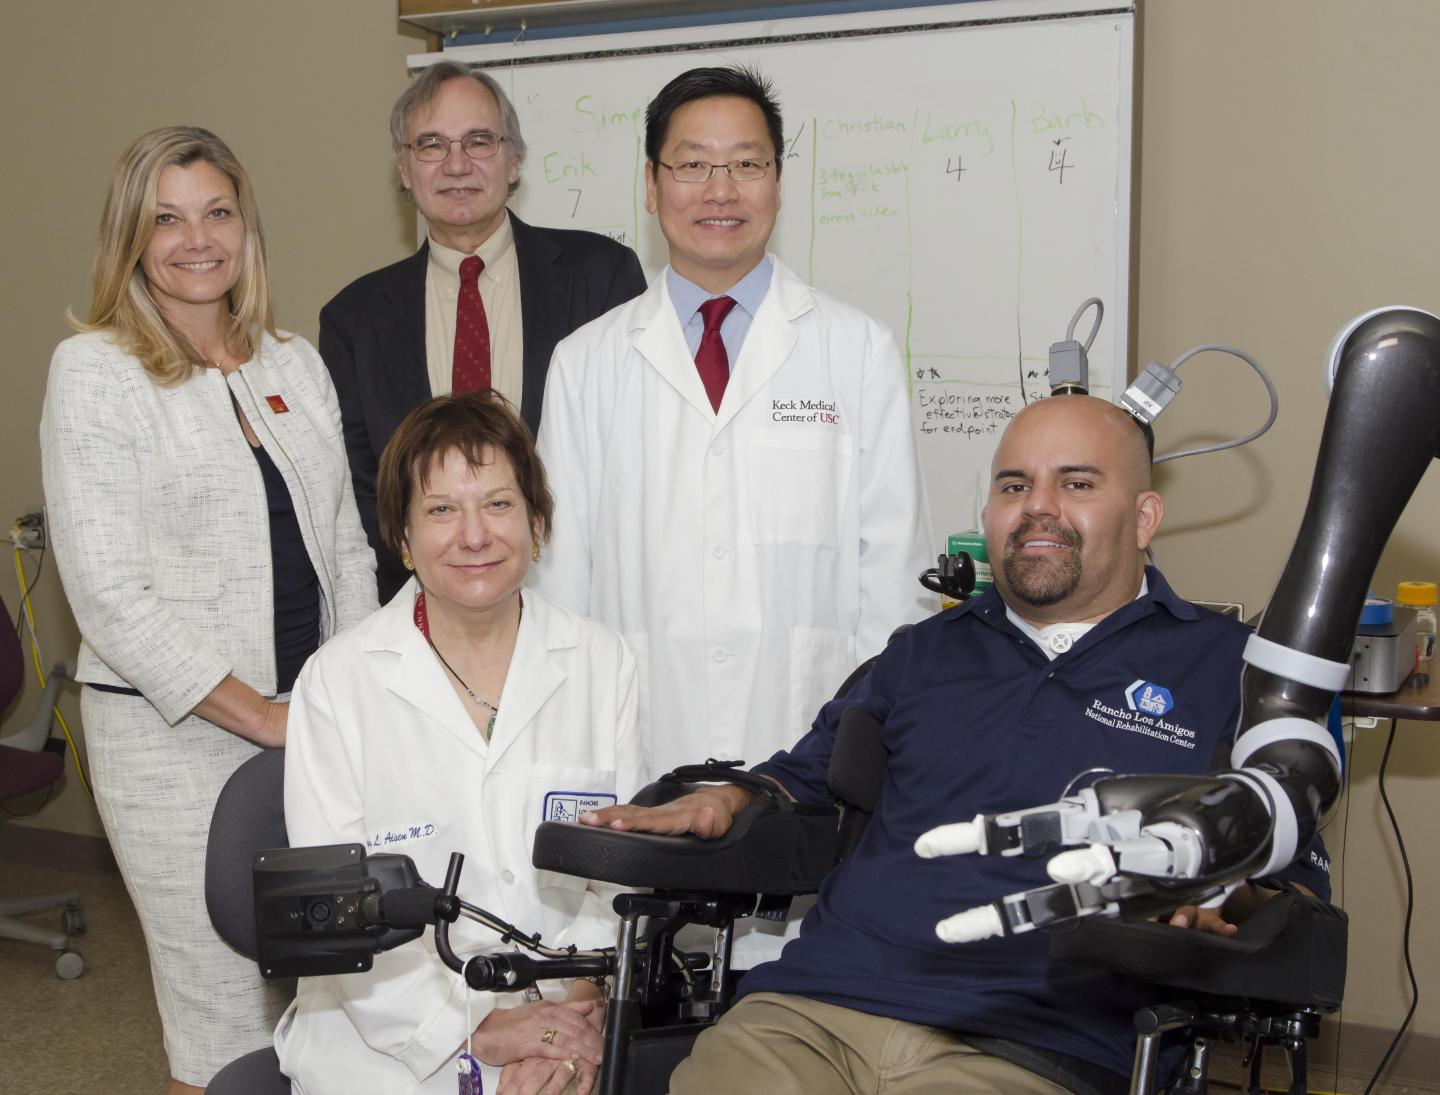 Clinical trial shows intuitive control of robotic arm using thought